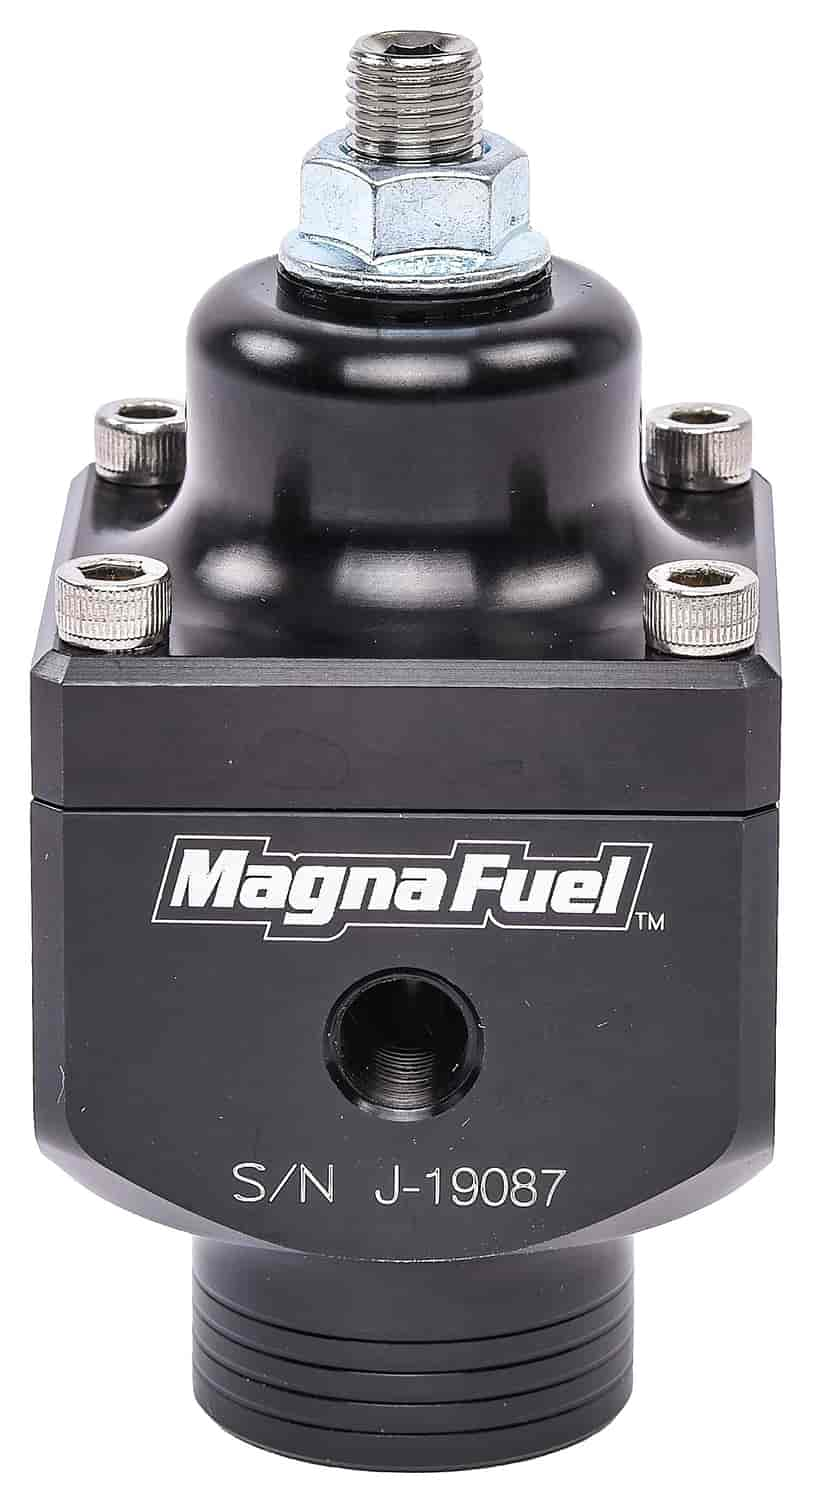 Magnafuel MP-9833-BLK - MagnaFuel Carbureted Regulators & Fittings